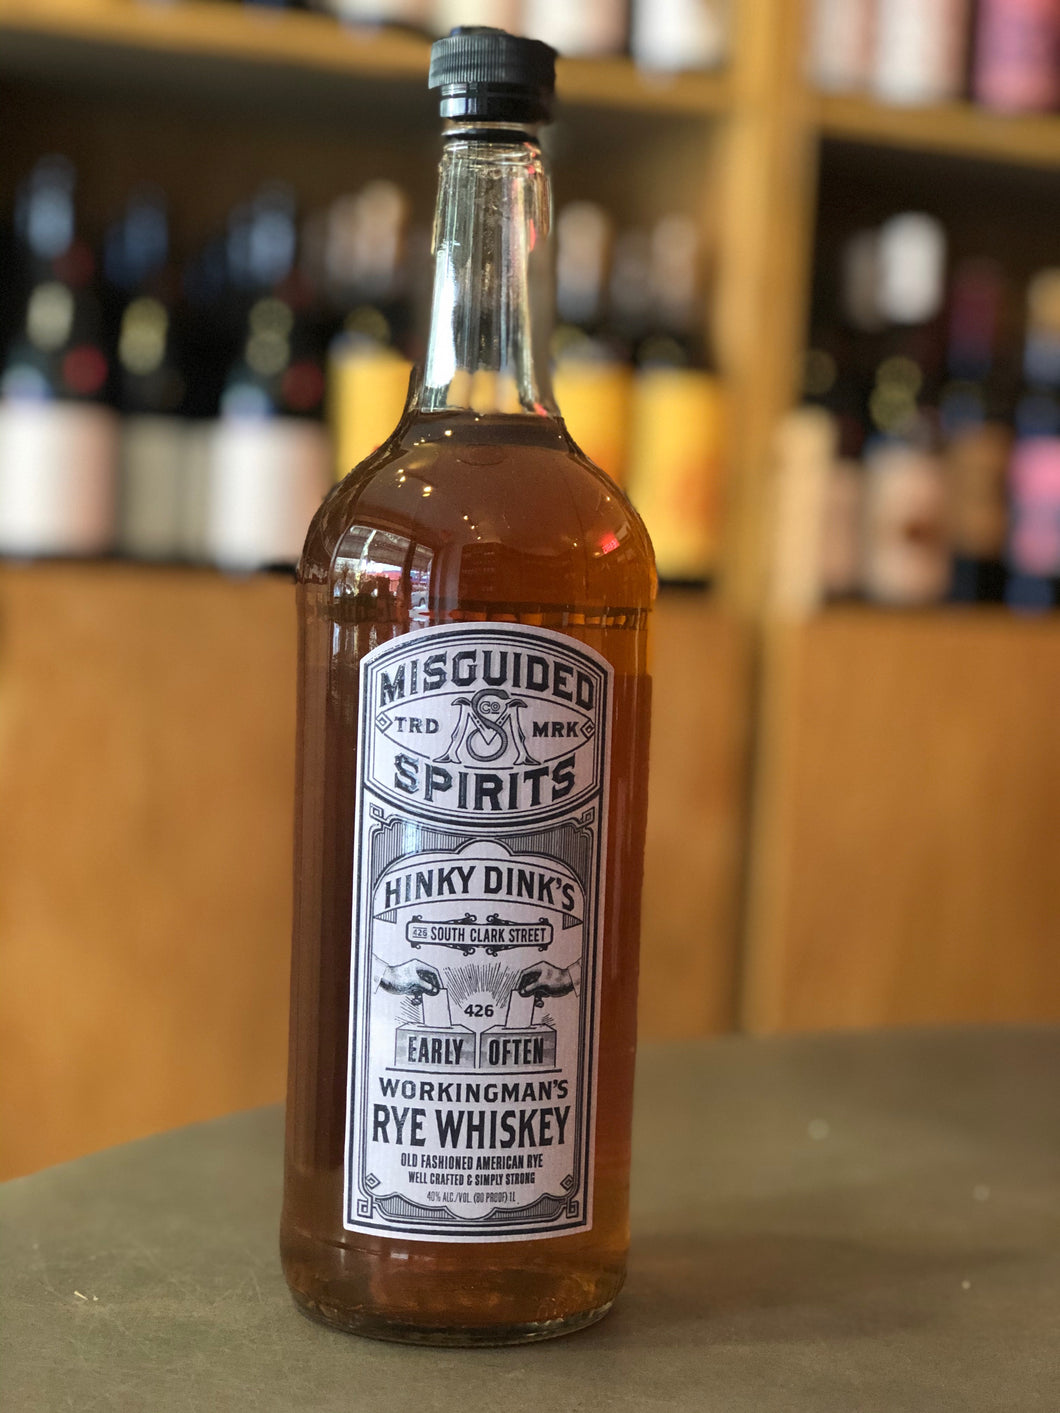 Misguided Spirits, Rye Whiskey - Hinky Dink's Workingman's